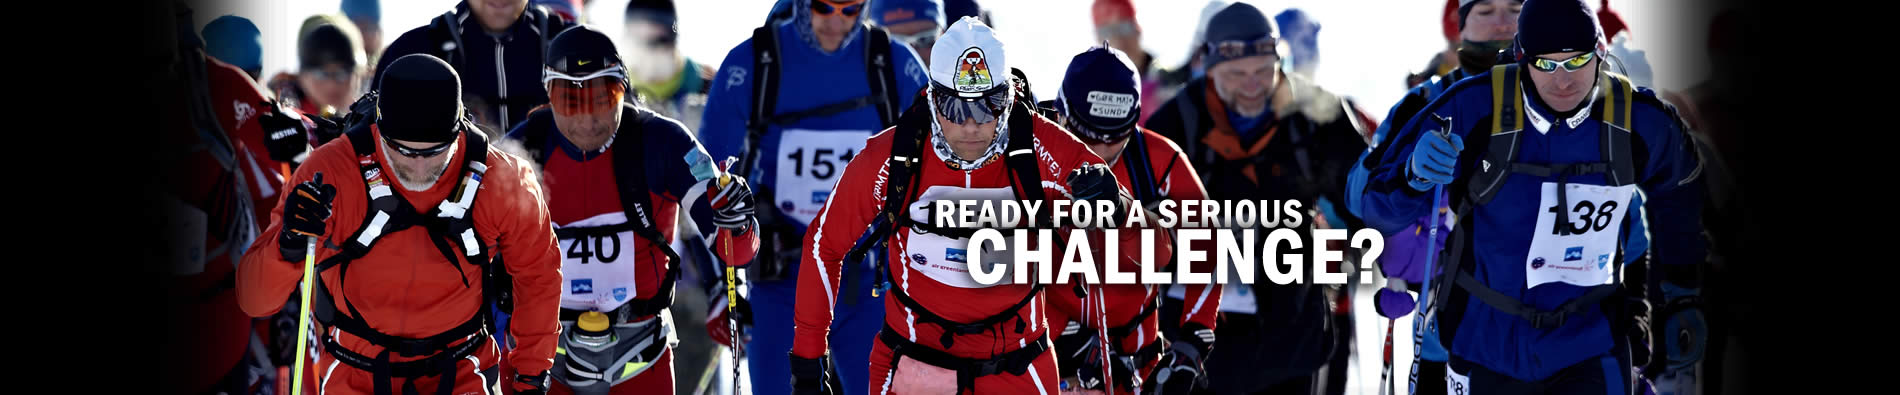 Ready for a serious challenge?